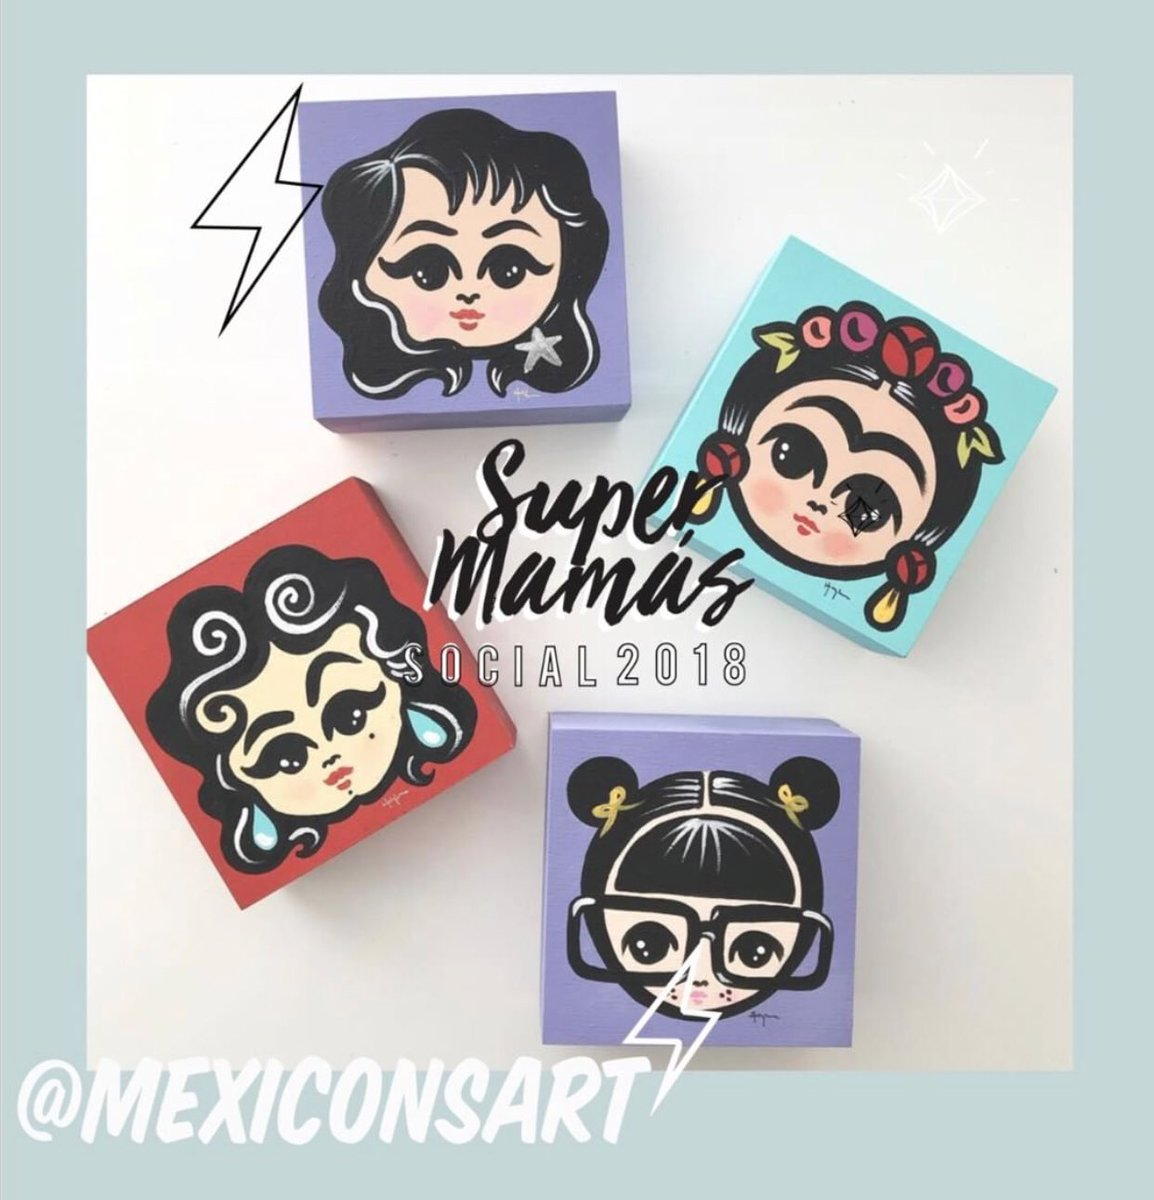 Get your hands on the super cute #mexicanicons merch from @mexiconsart ... another vendor at our #PopUpAlley